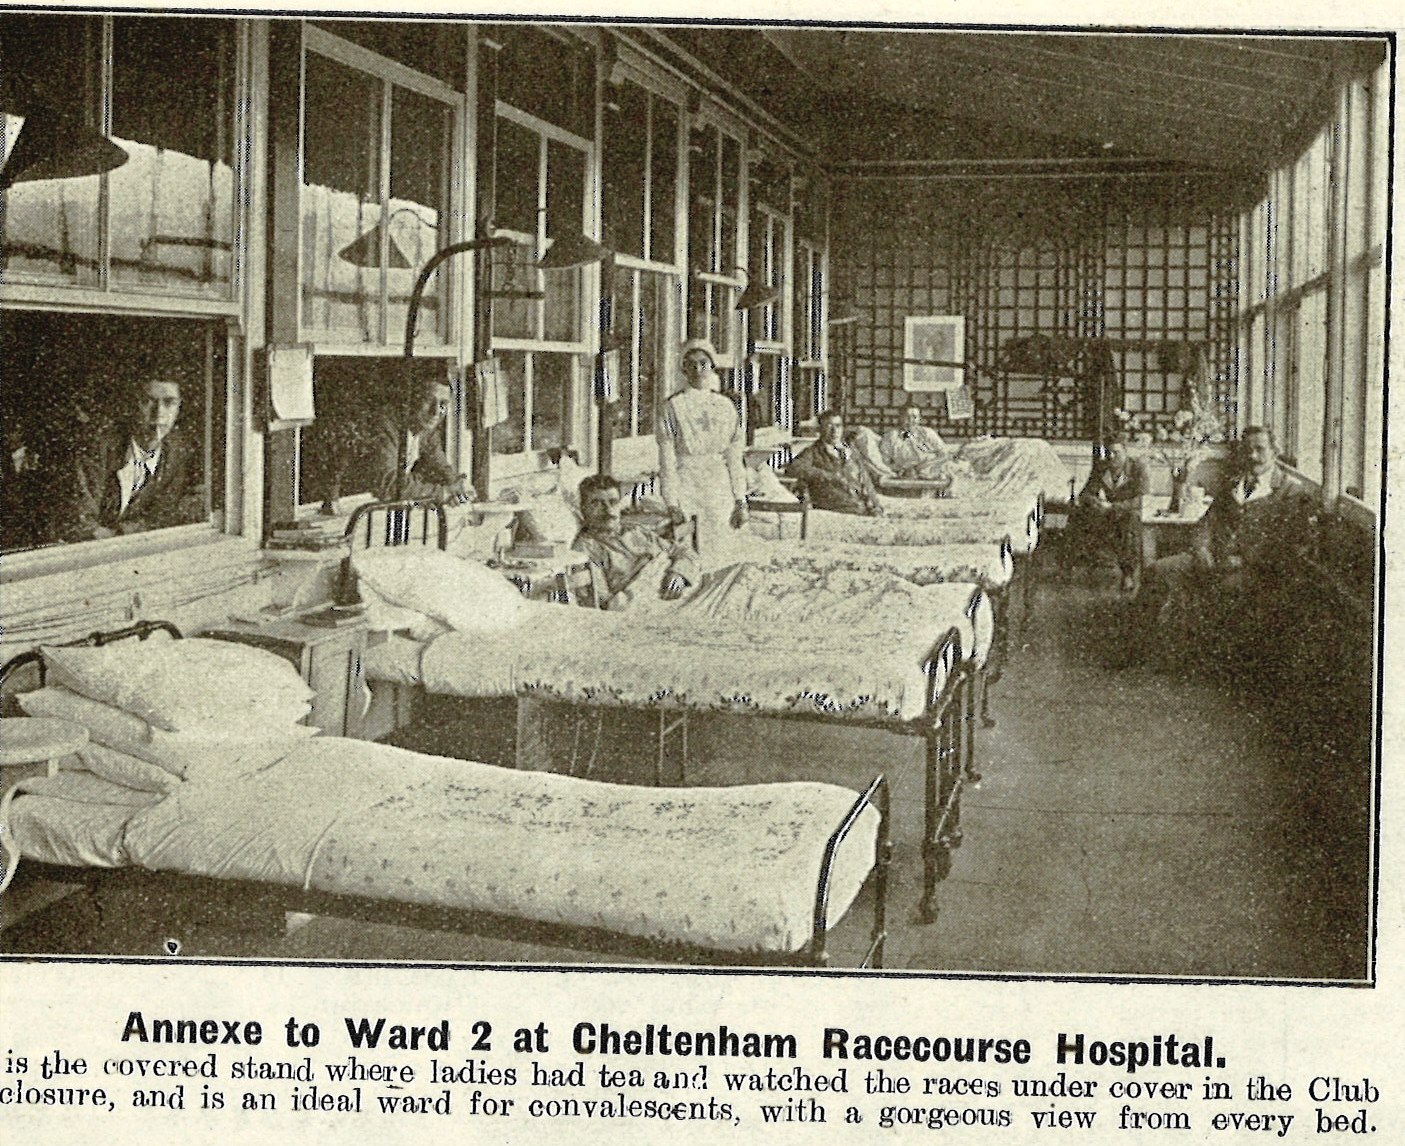 An image appearing in the Cheltenham Chronicle and Gloucester Graphic for Saturday 16 March. When the racecourse should have been celebrating the annual National Hunt festival, it was instead being used as a VAD Hospital.